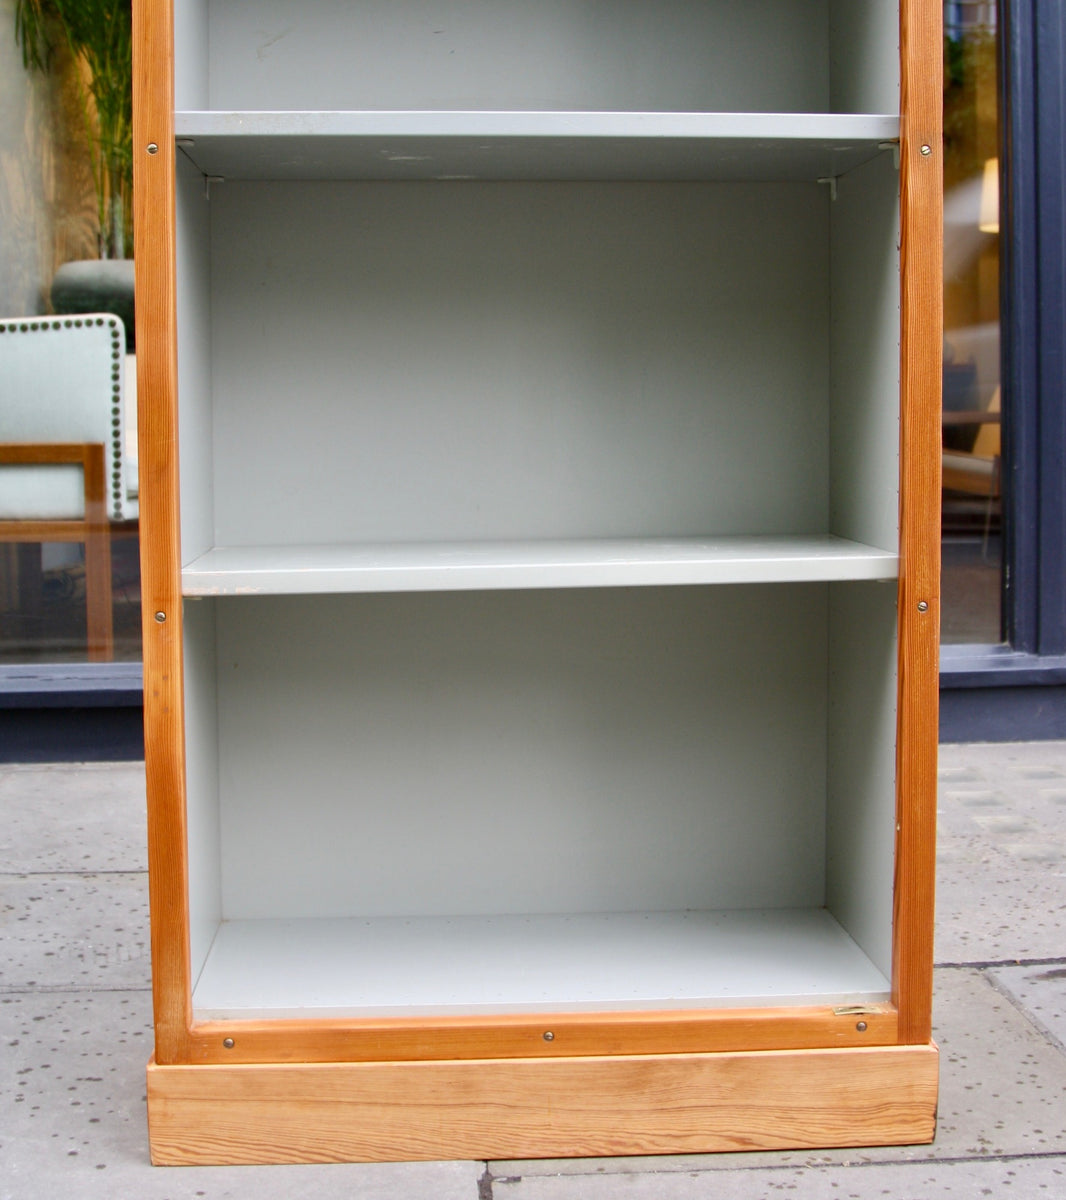 Narrow Bookcase #2 Børge Mogensen & Grete Meyer - detailed Quality Danish Modern Beautiful Handmade Danish Design Architect Designed Simple Built for the future Storage original